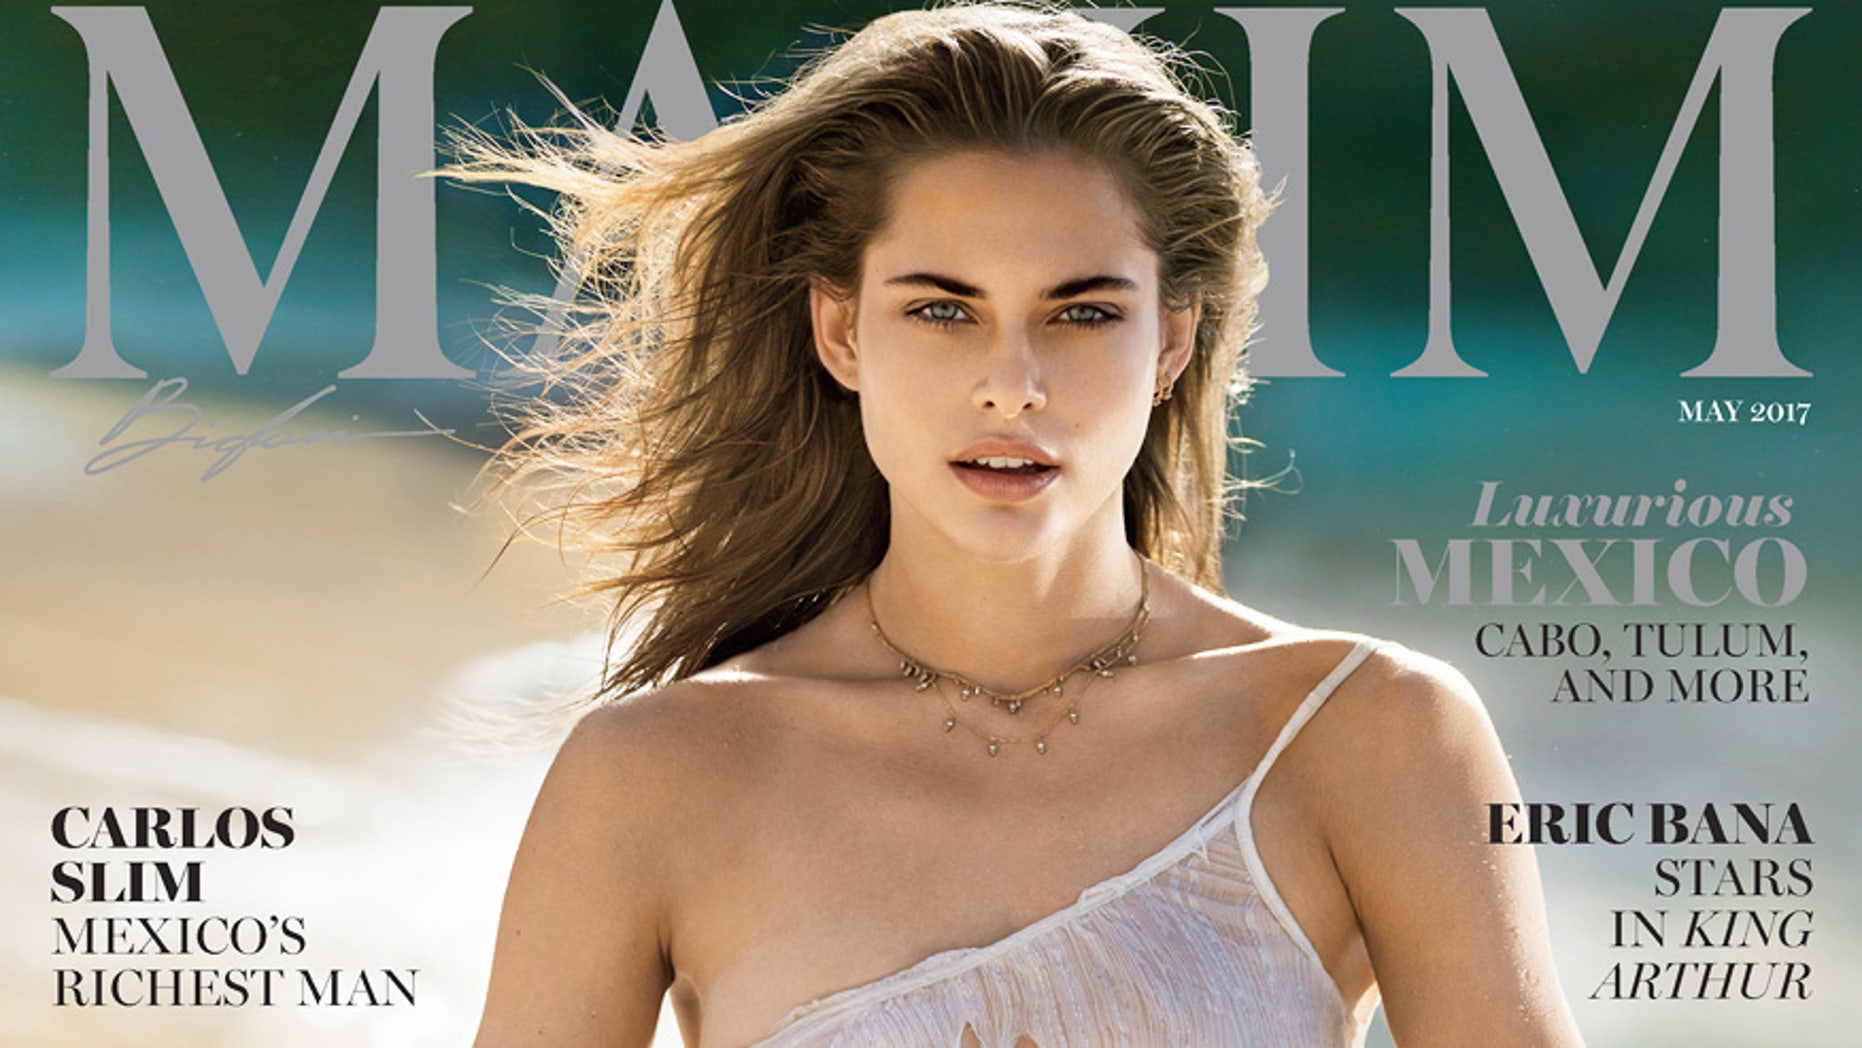 Lana Zakocela is Maxim's May 2017 cover girl.